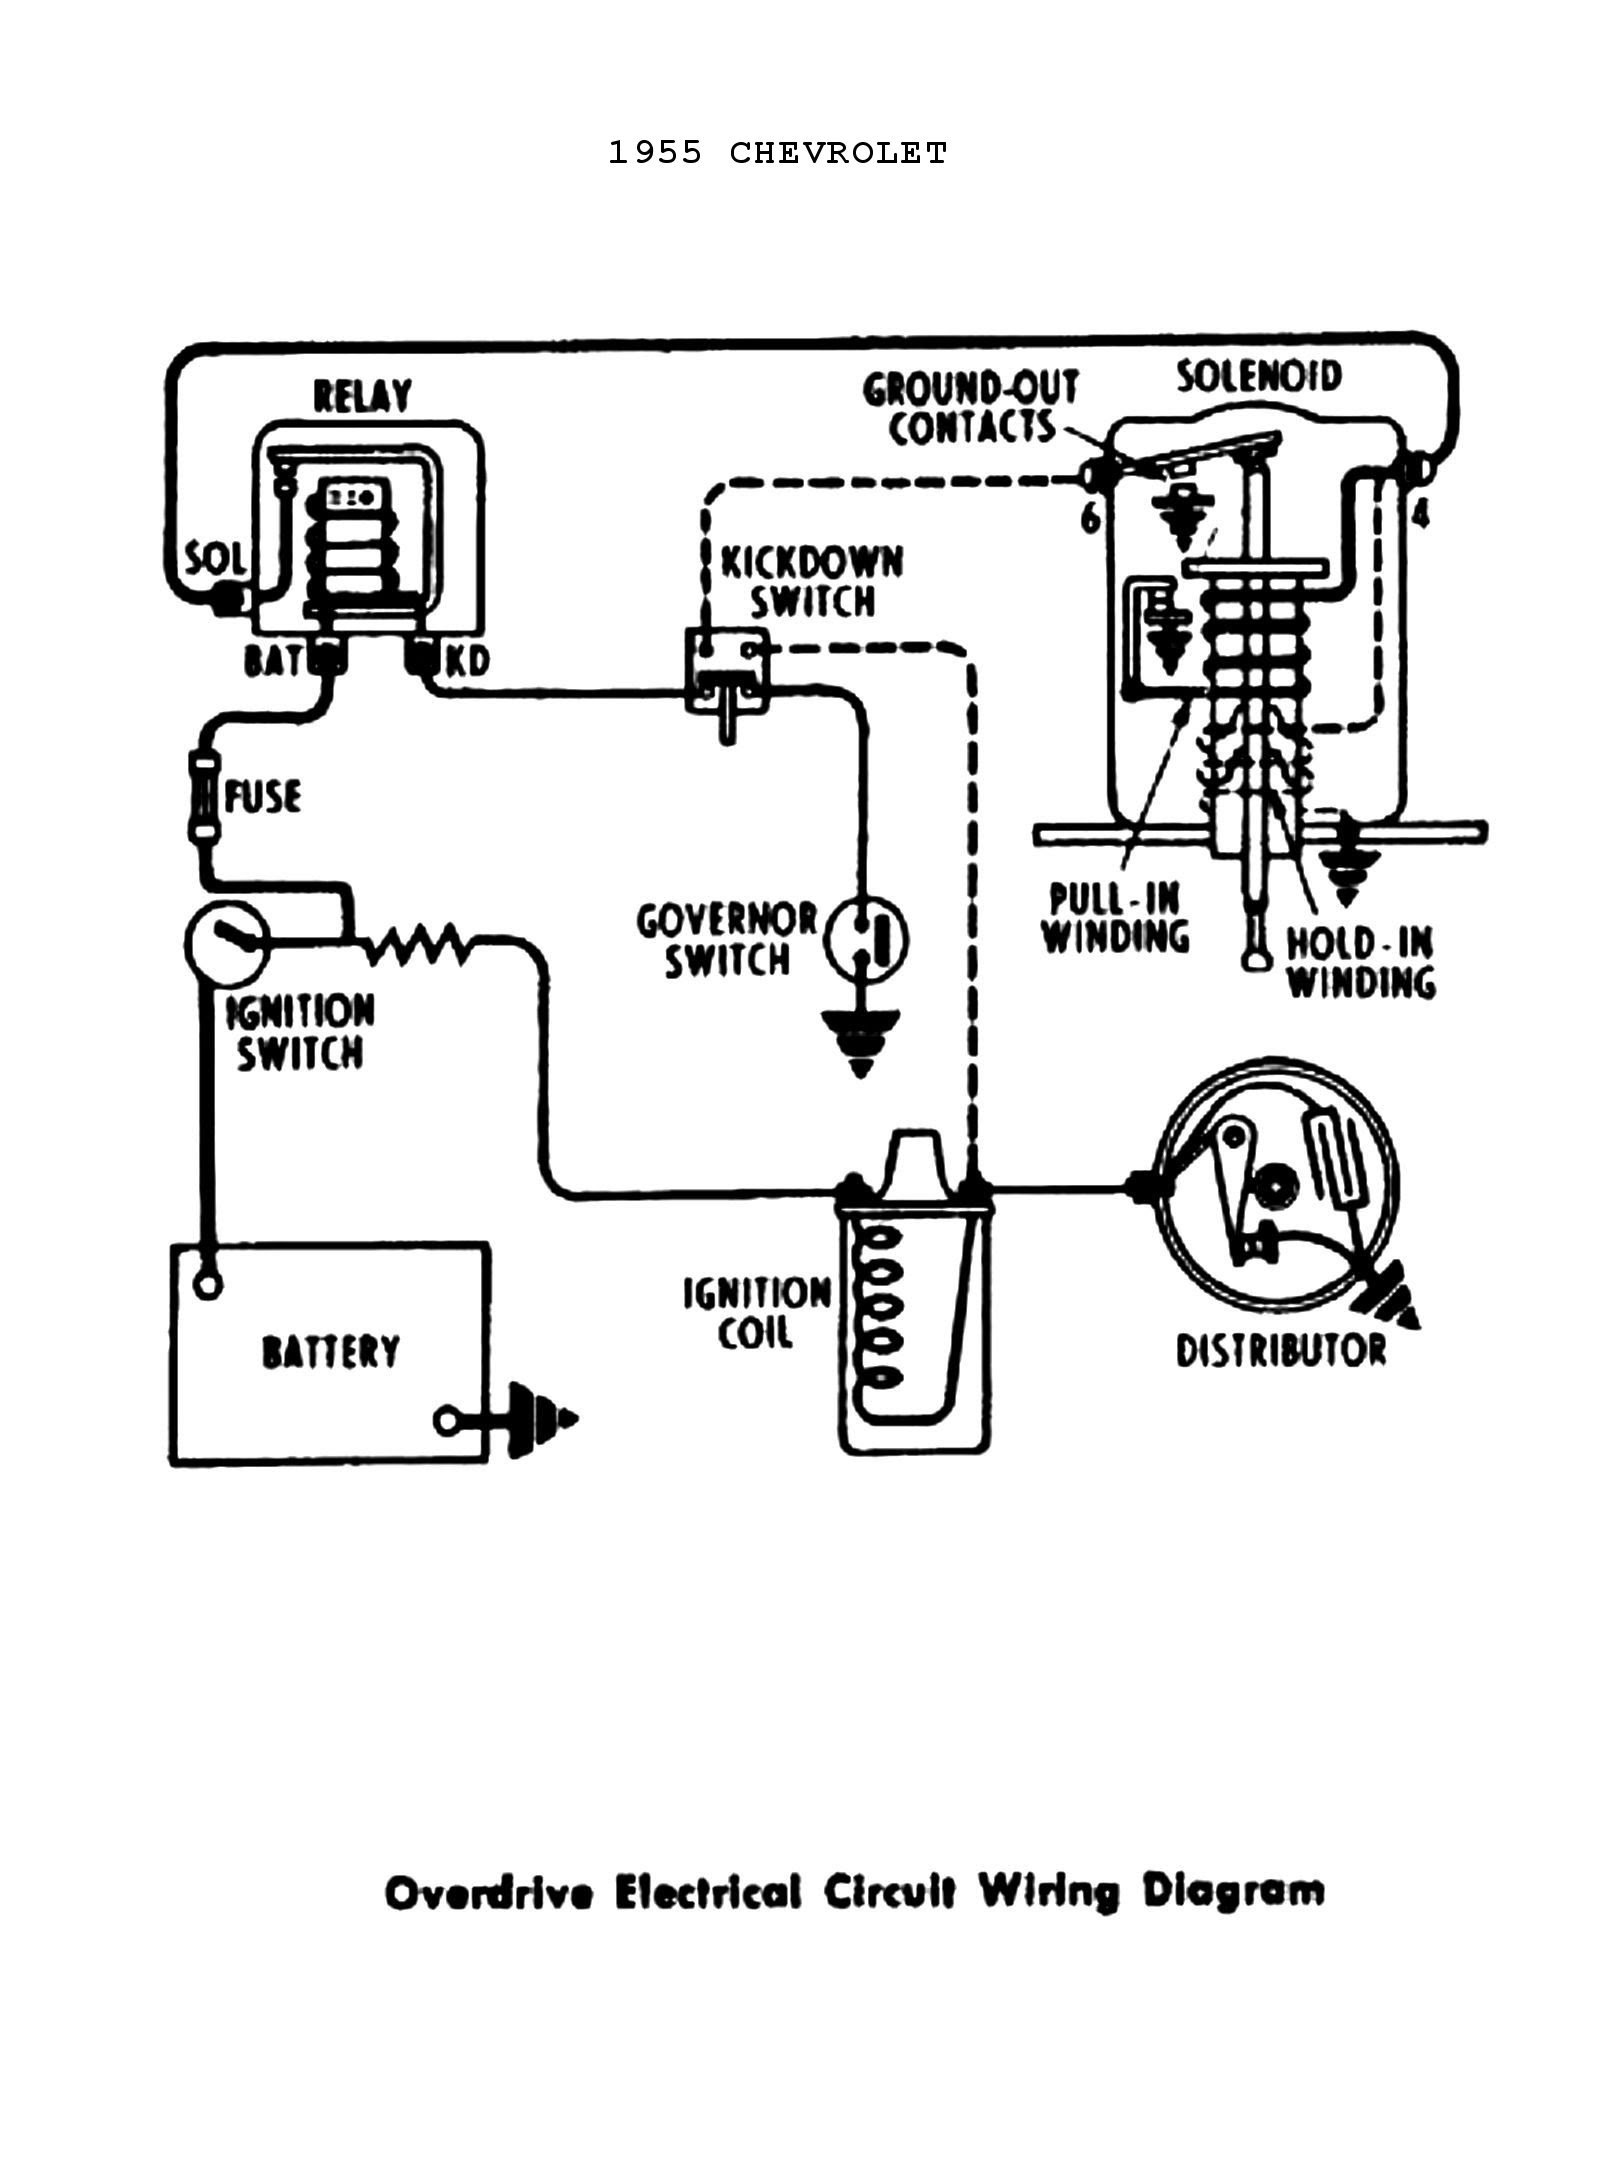 Diagram 1957 Chevrolet Workshop Wiring Diagram Full Version Hd Quality Wiring Diagram Livediagrams18 Eaglesport It